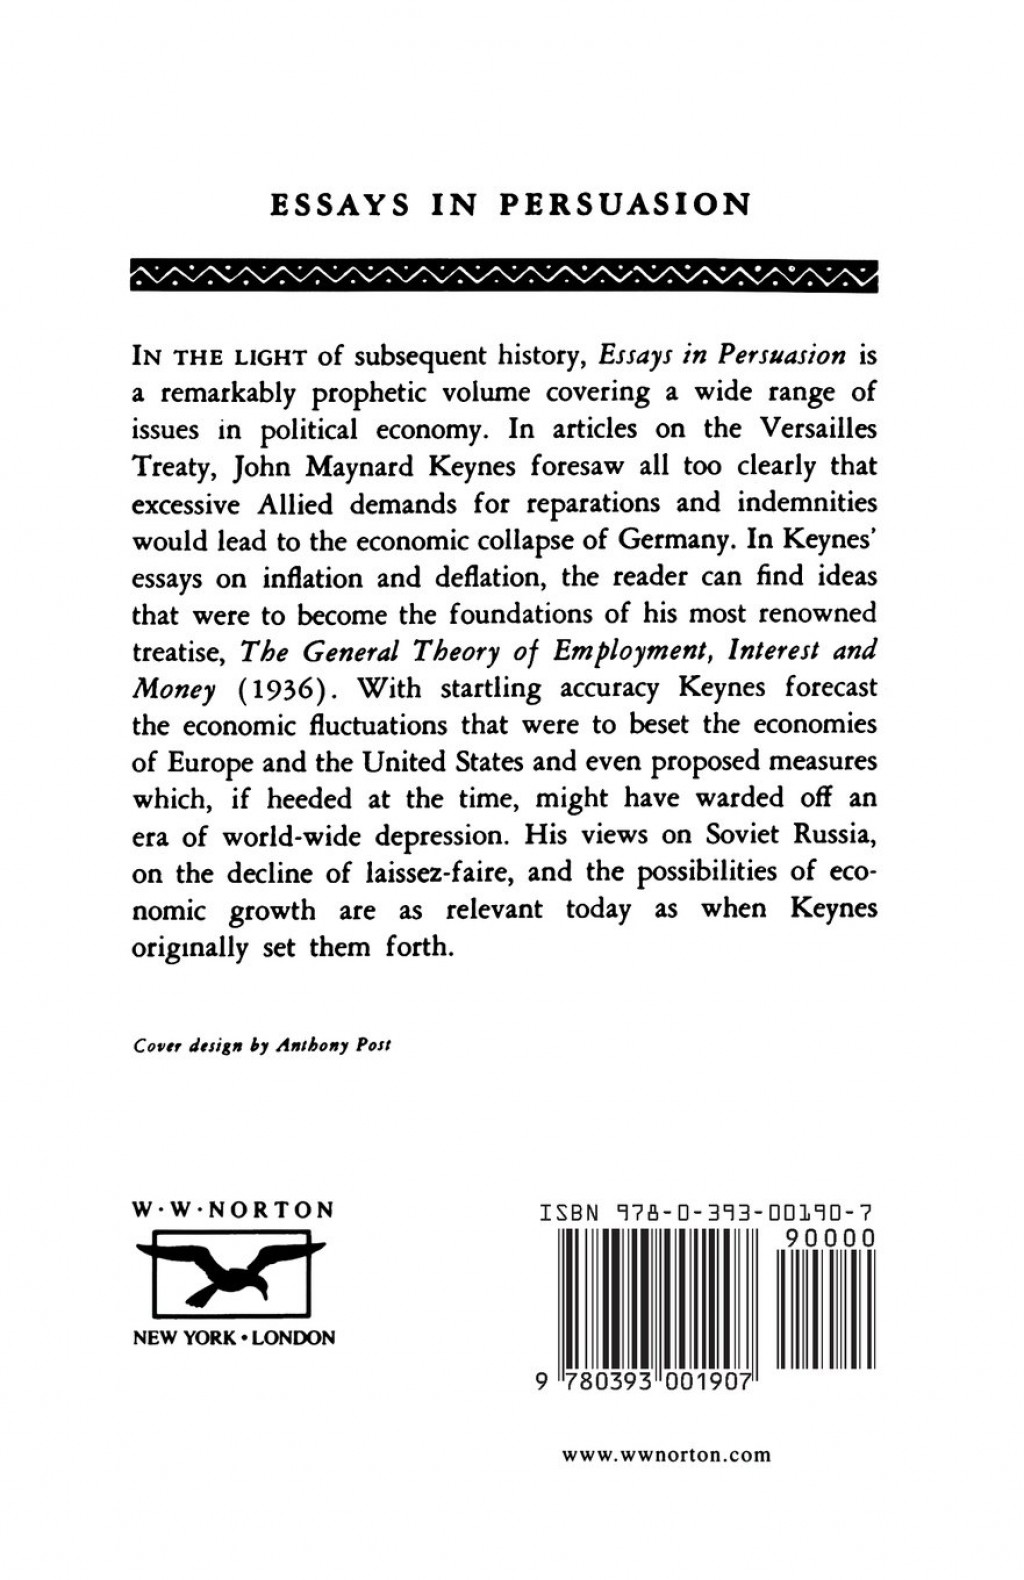 011 Essays In Persuasion 71ahgmsw 0l Essay Remarkable Keynes 1931 Wikipedia Summary Large